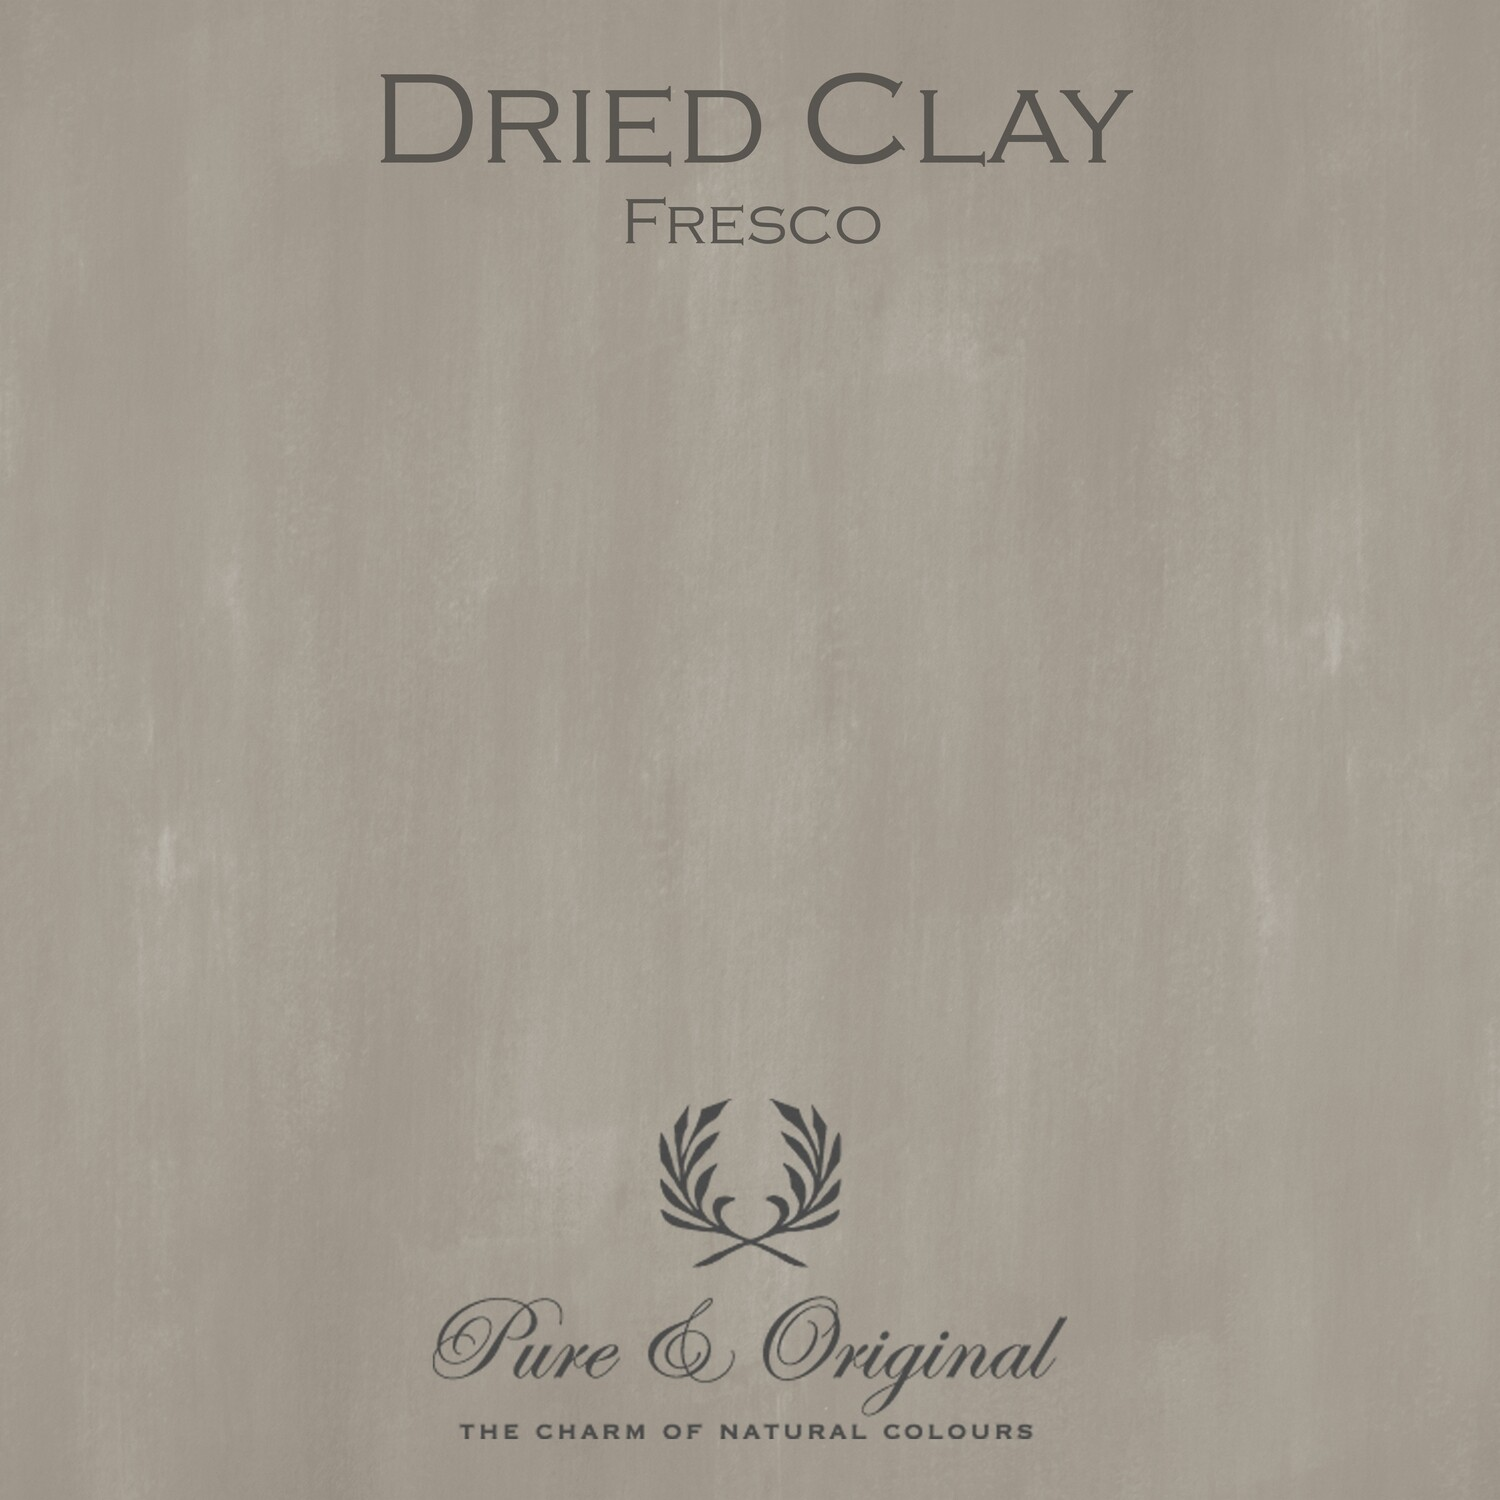 Dried Clay Fresco